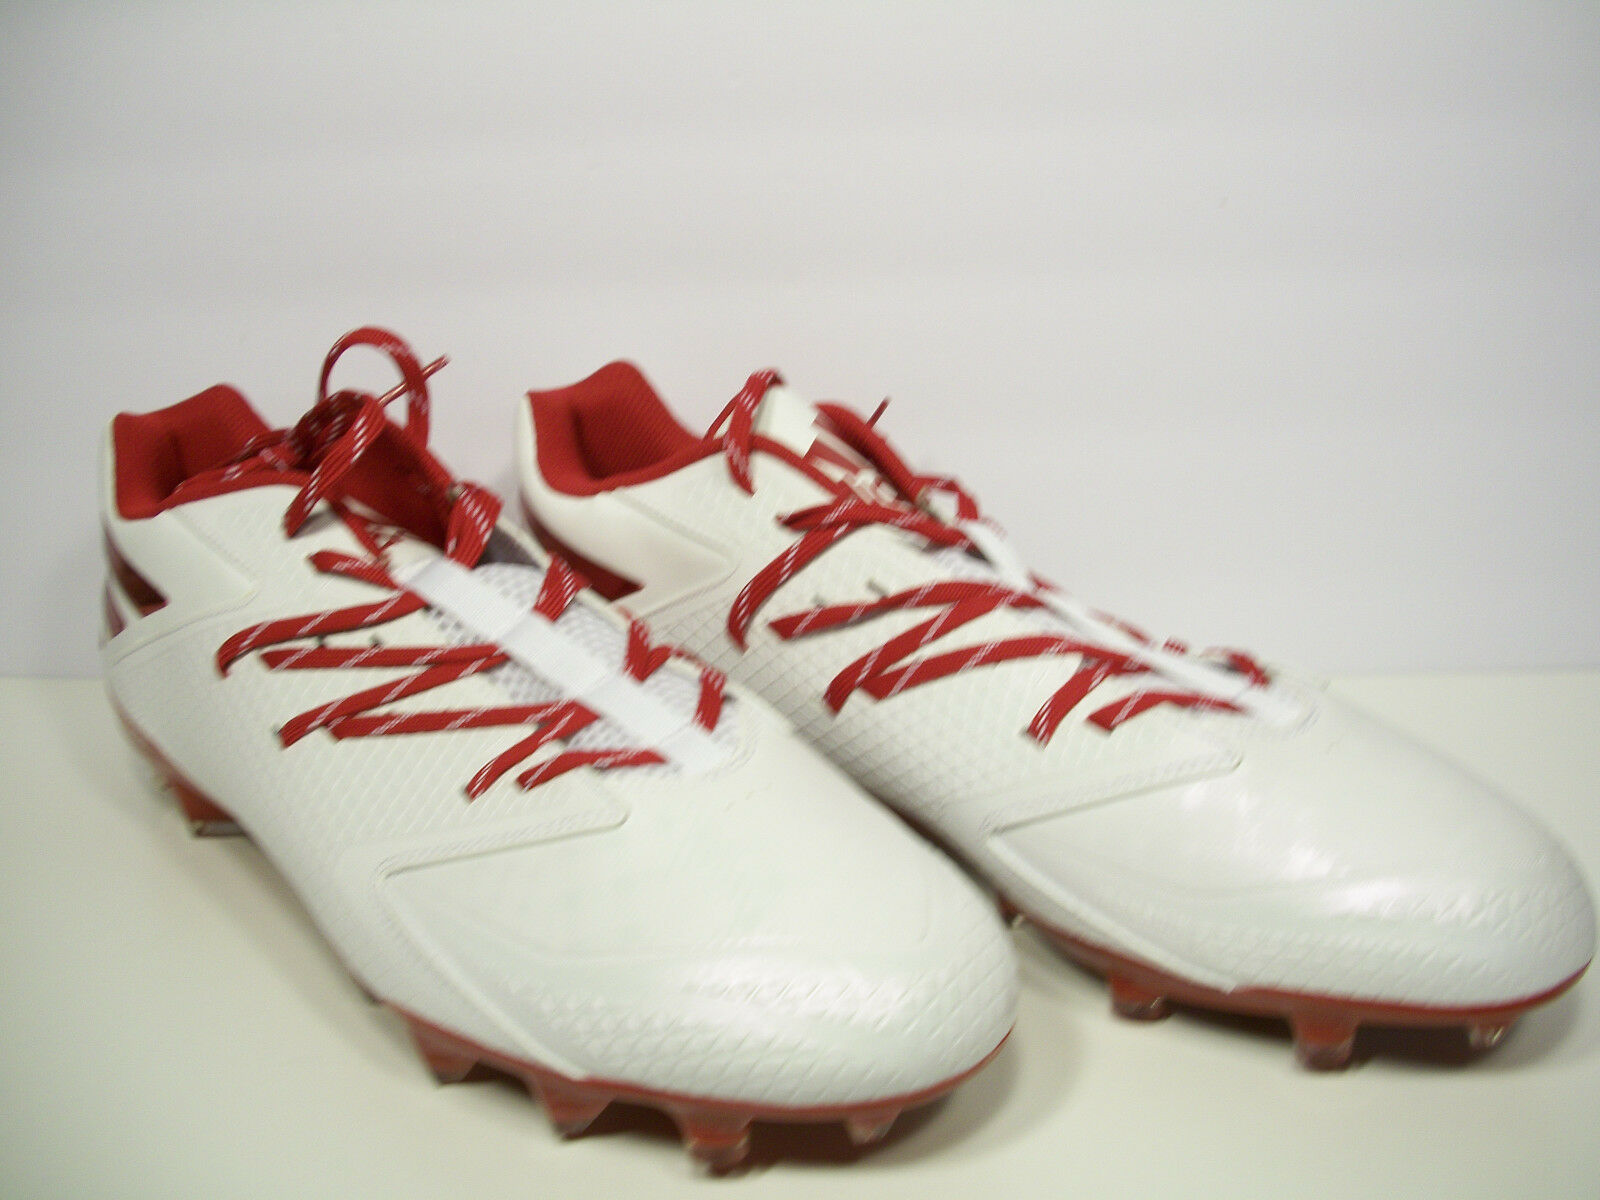 ADIDAS Freak X Carbon Low Football Cleats QUICKFRAME D70 White/Red Size 13